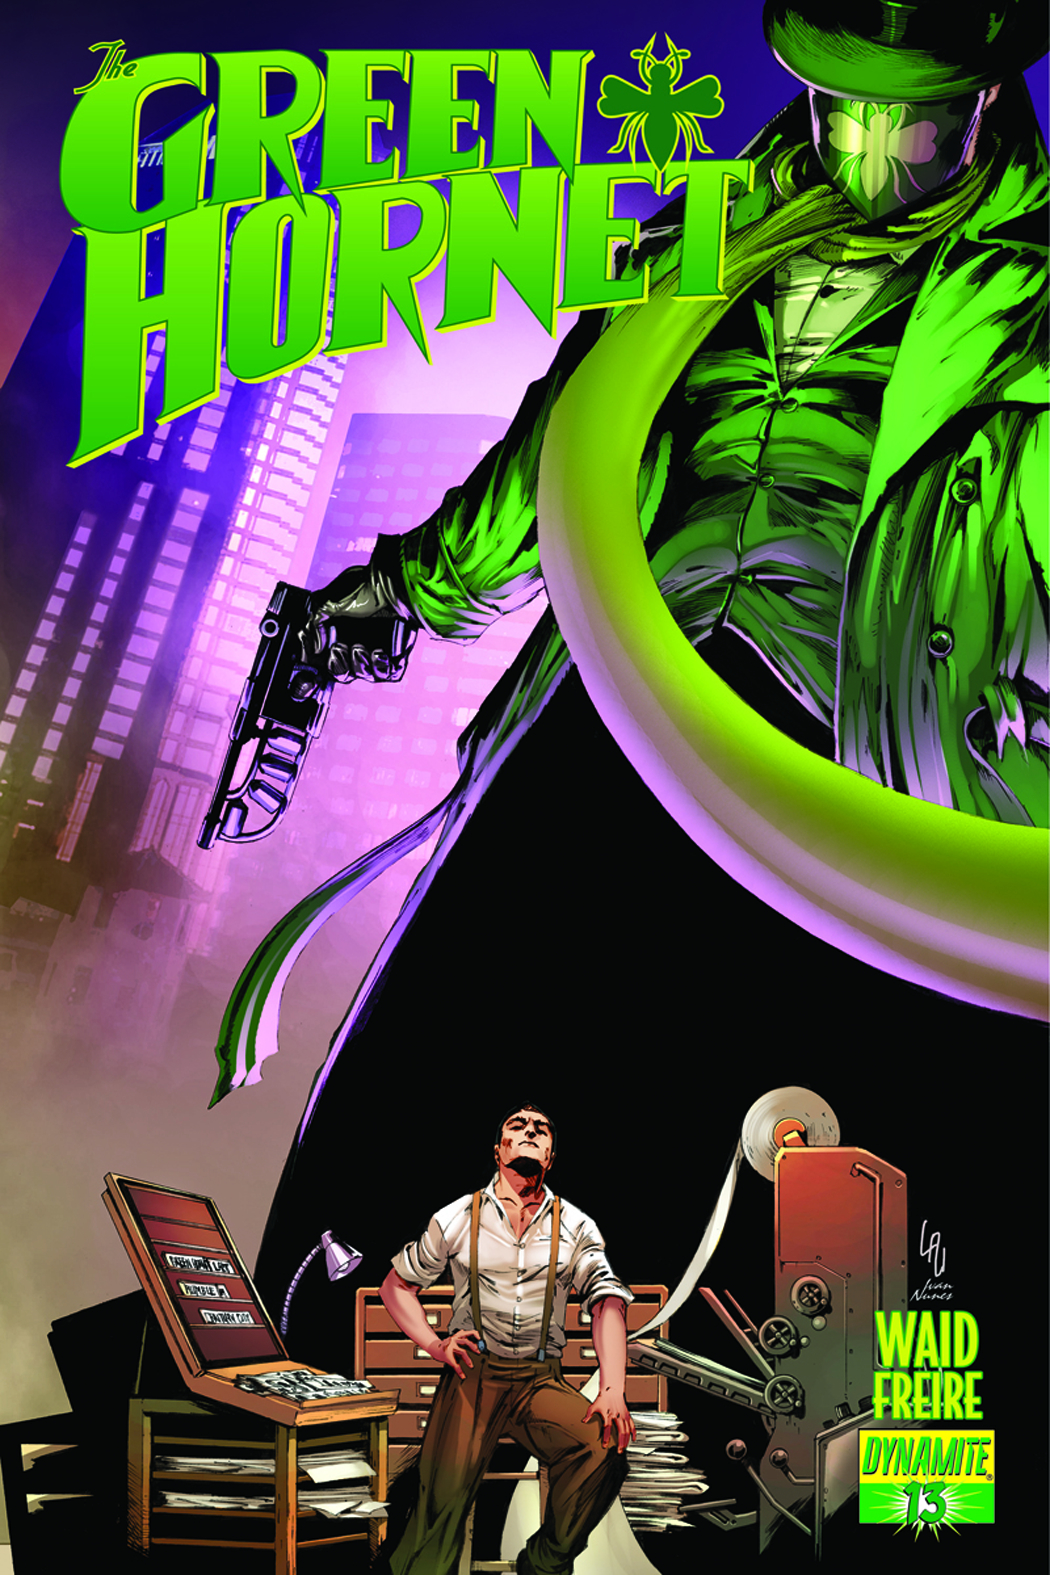 MARK WAID GREEN HORNET #13 LAU SUBCRIPTION VARIANT